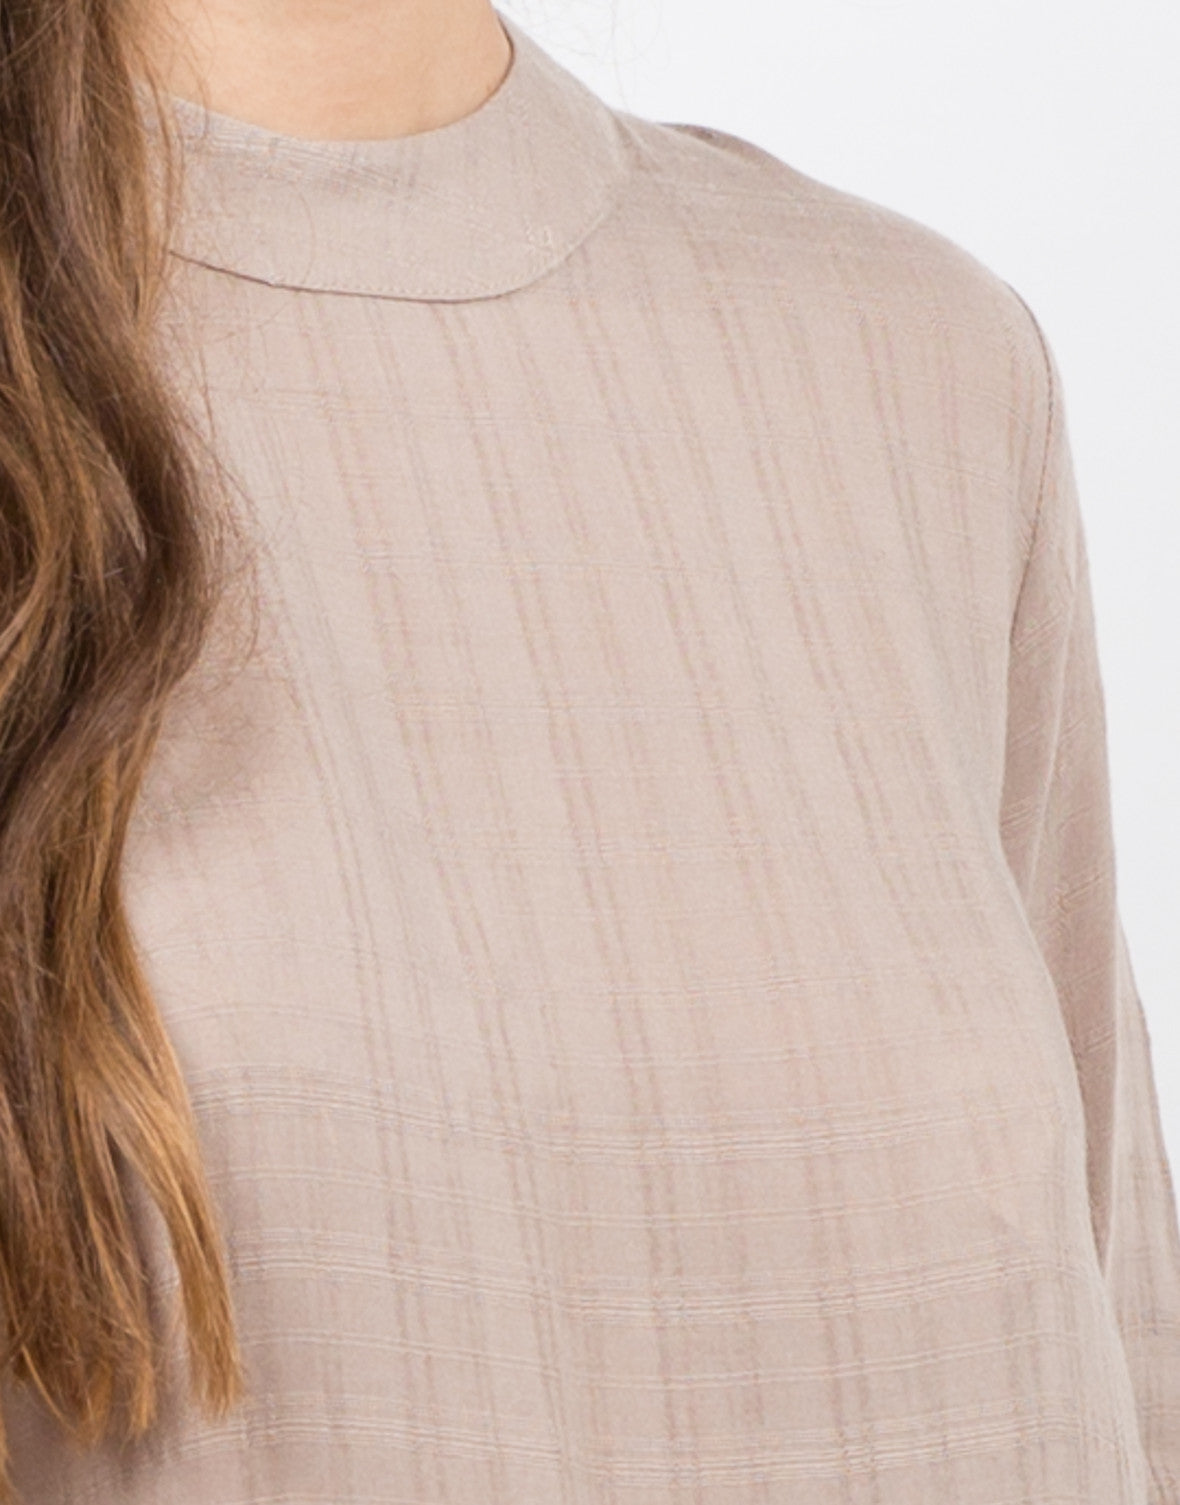 Detail of Woven Flowy Top